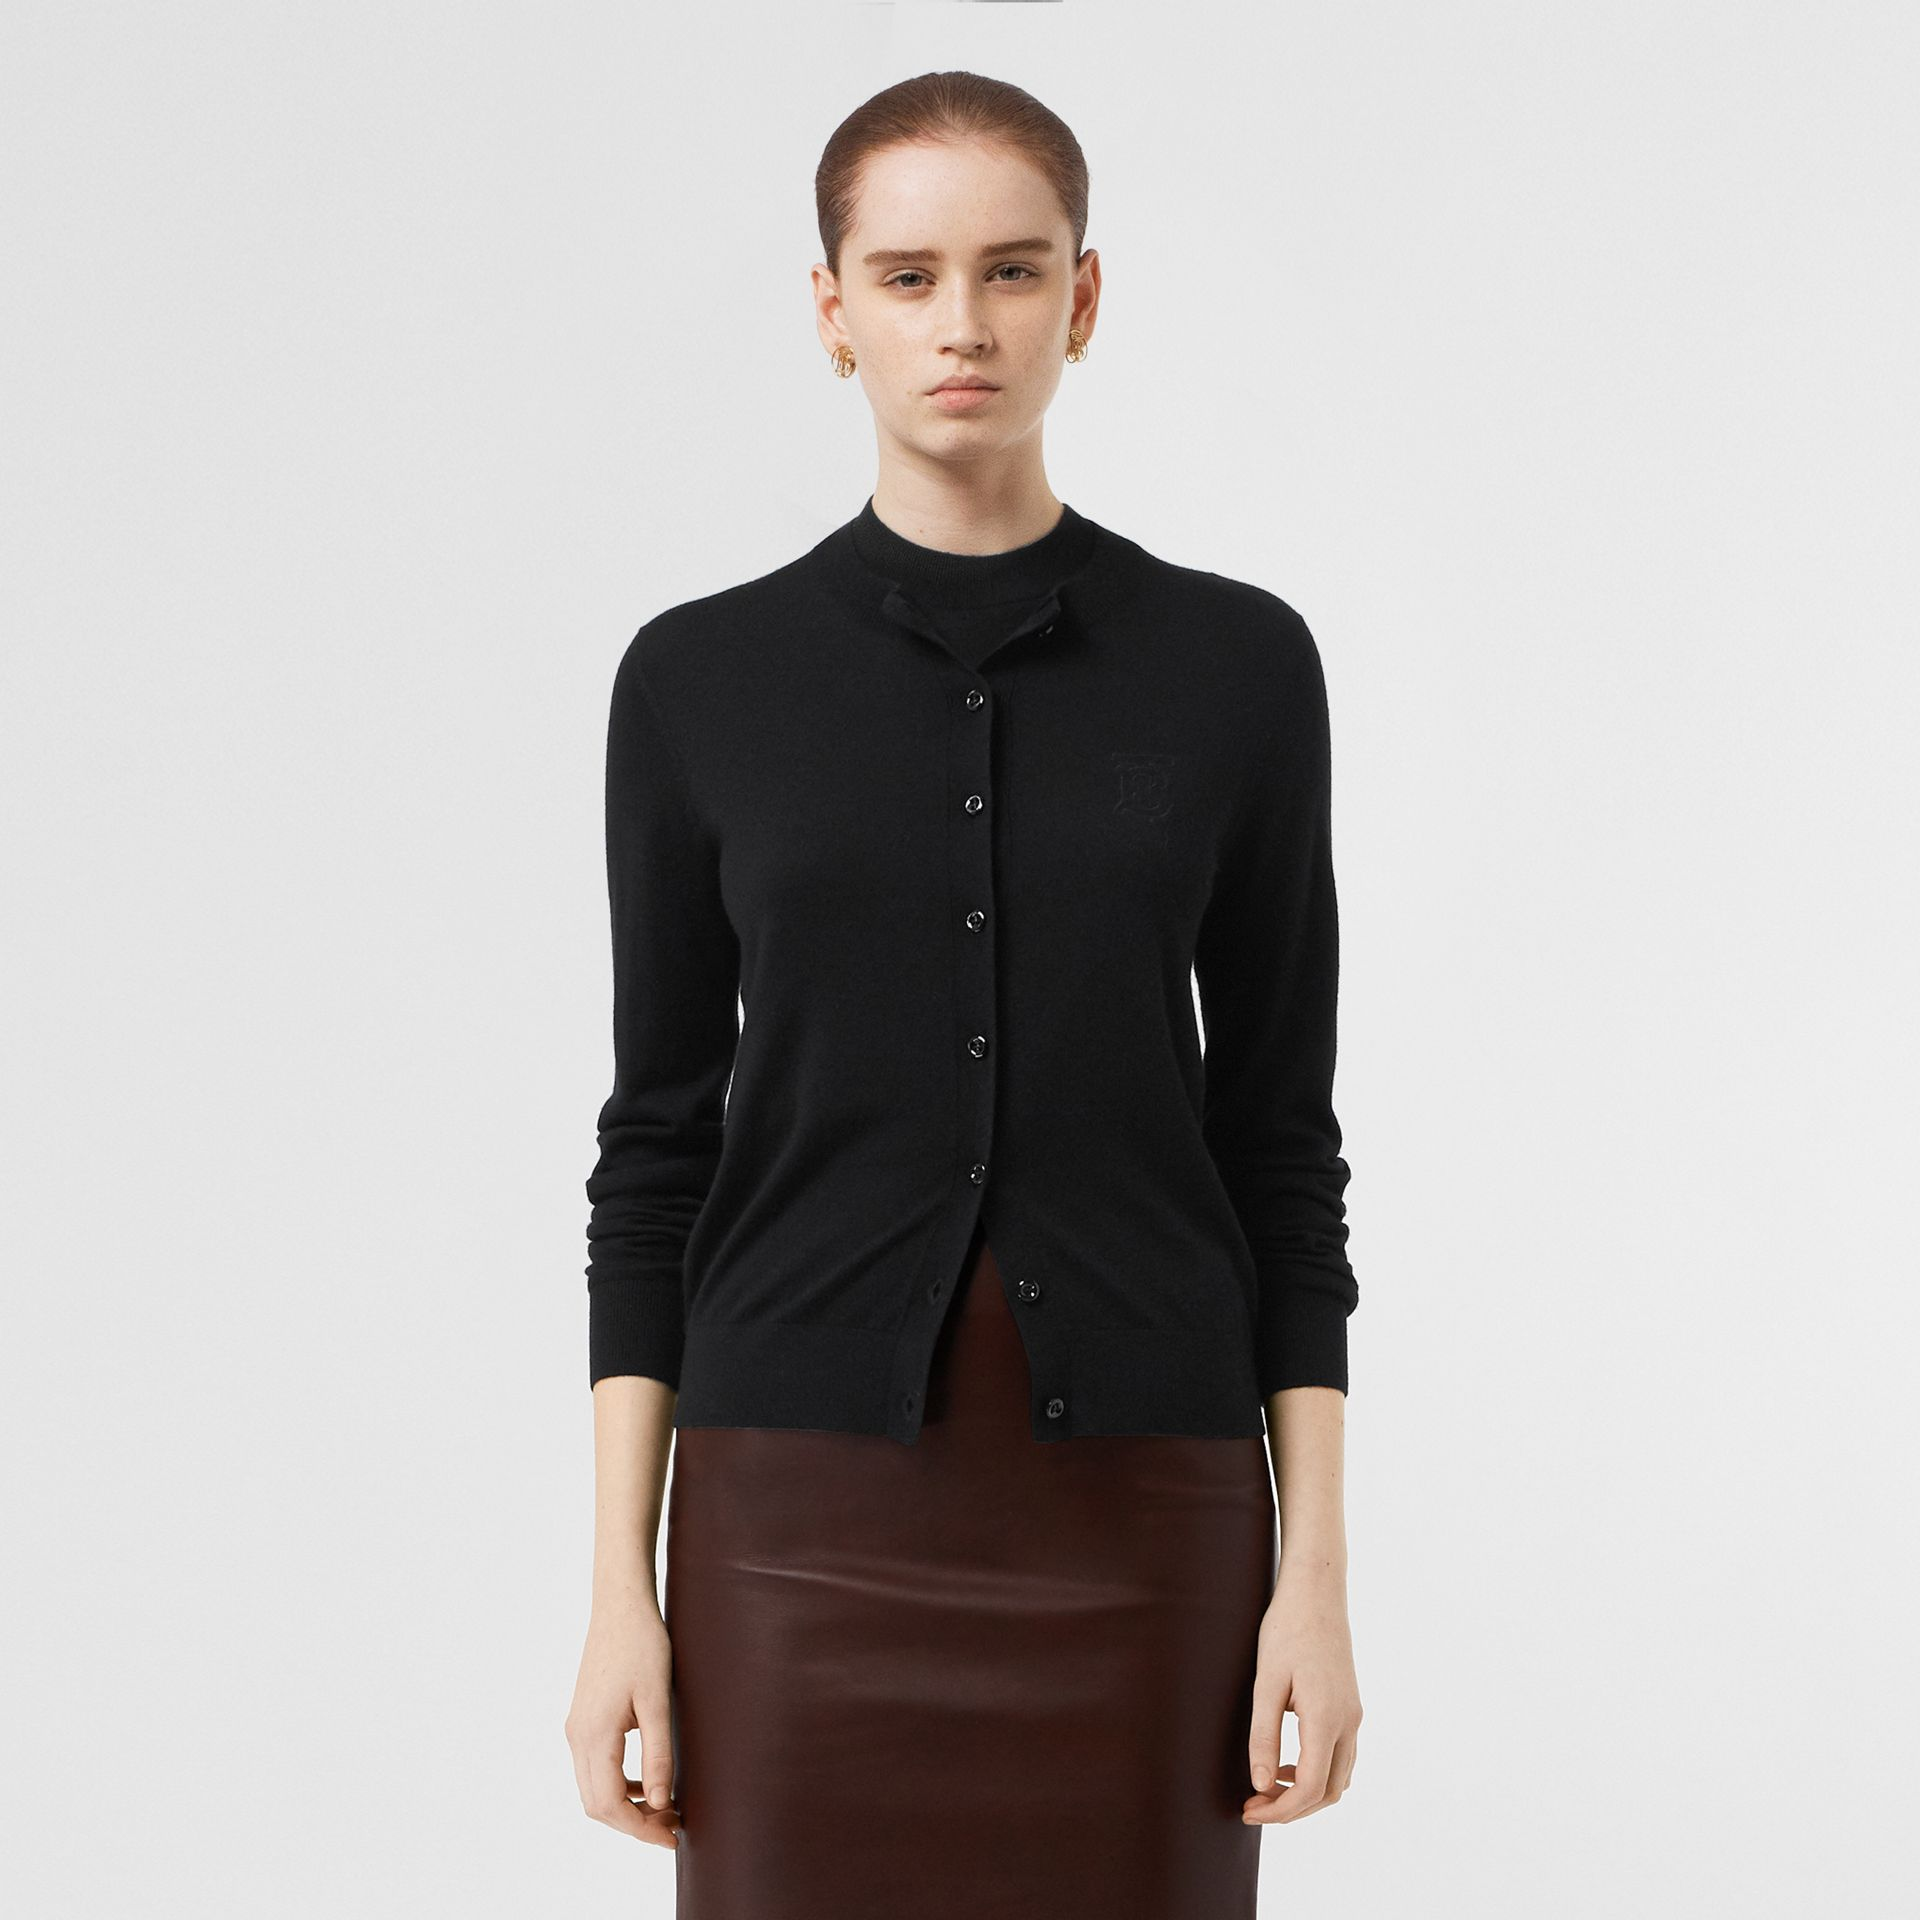 Monogram Motif Cashmere Cardigan in Black - Women | Burberry - gallery image 6